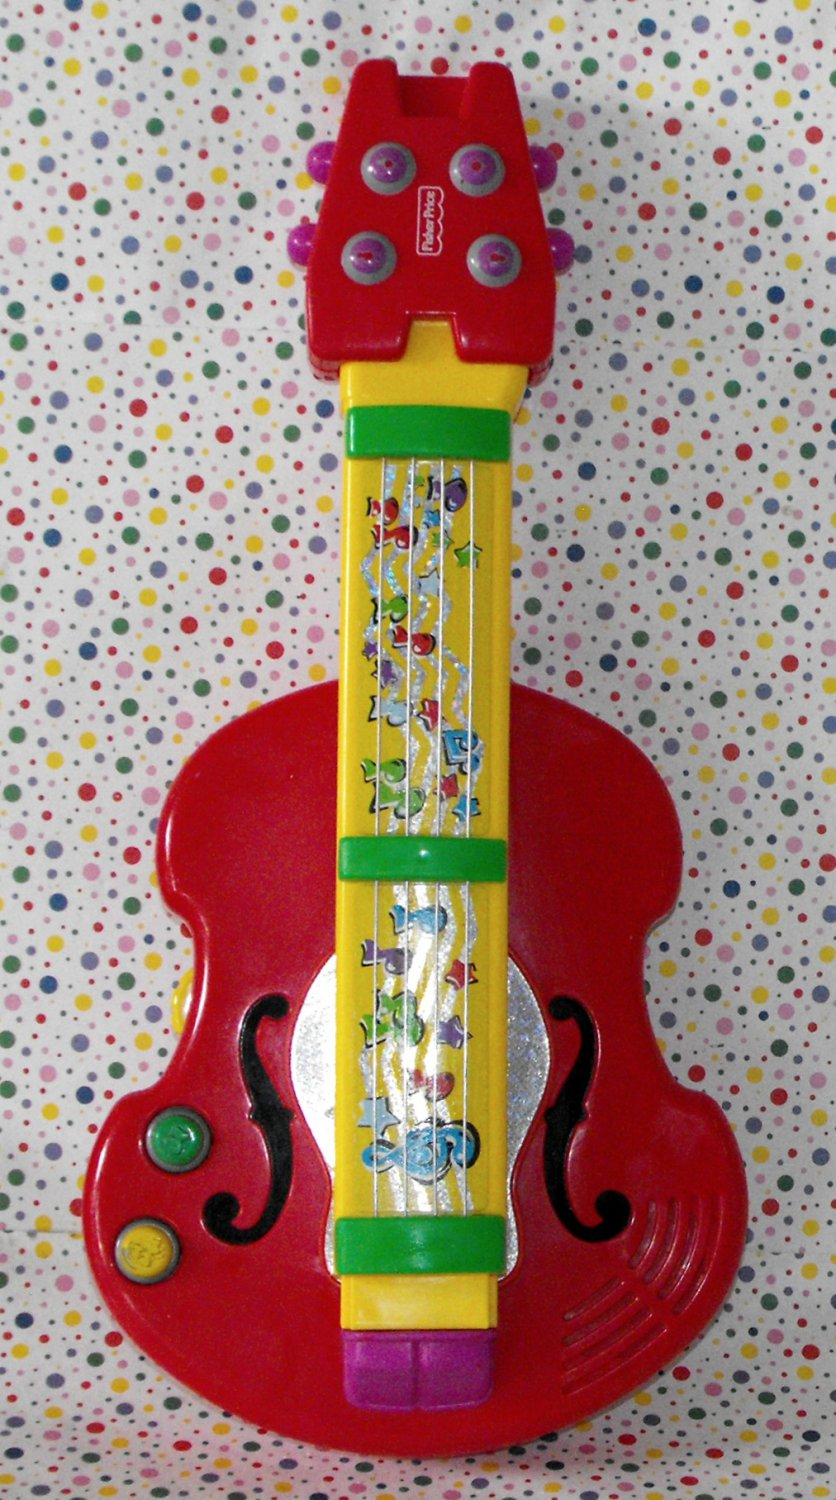 Fisher Price 2-in-1 Bach 'n Rock Guitar